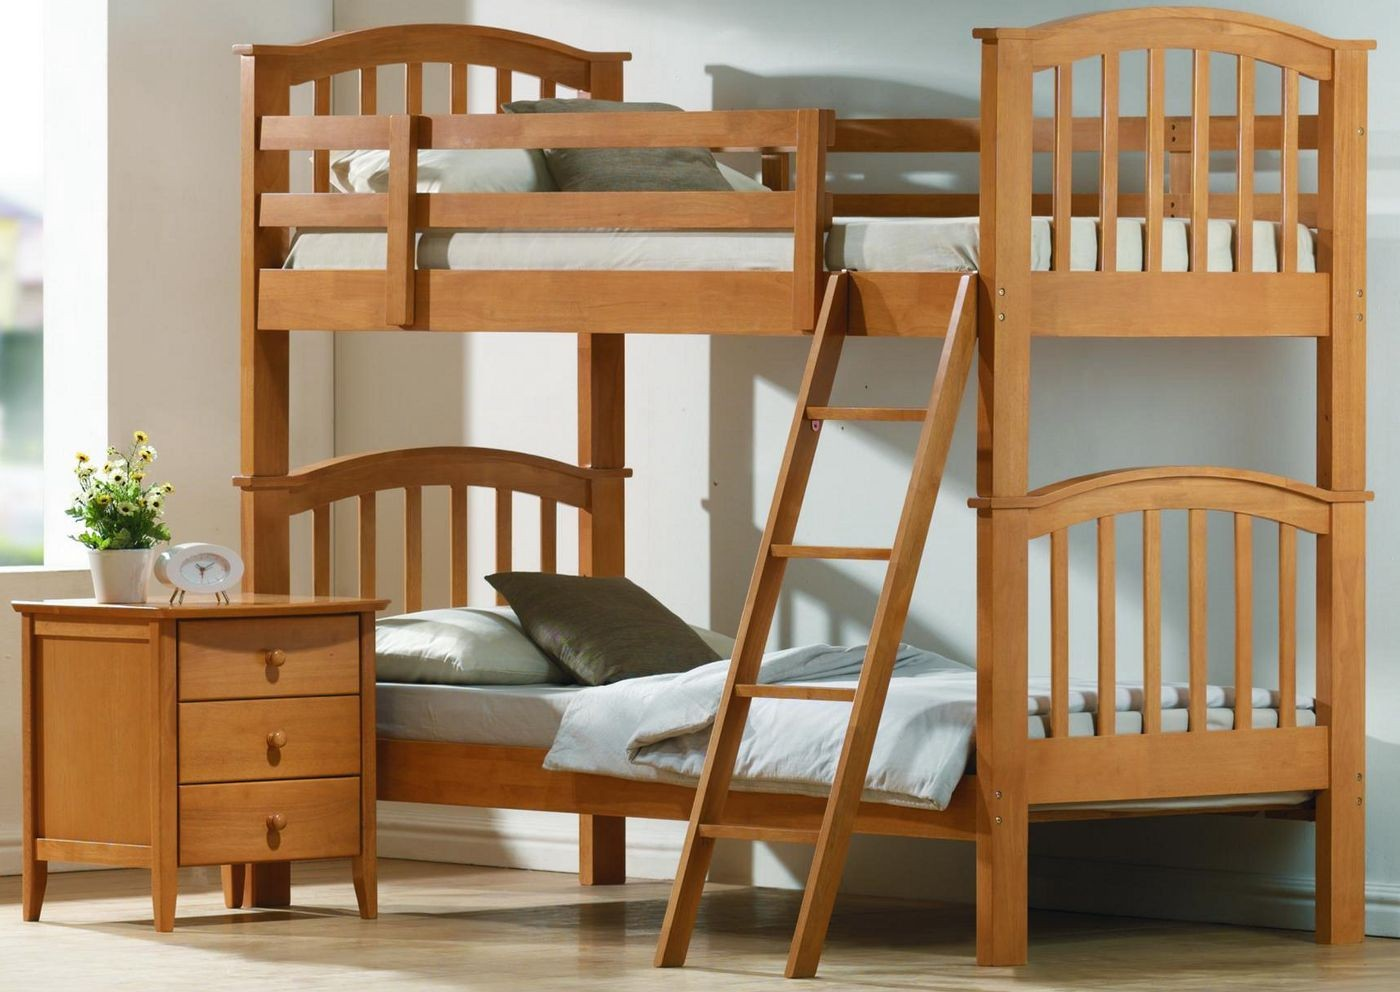 Complete your simple bedroom with low profile bunk bed for Bunk bed room layout